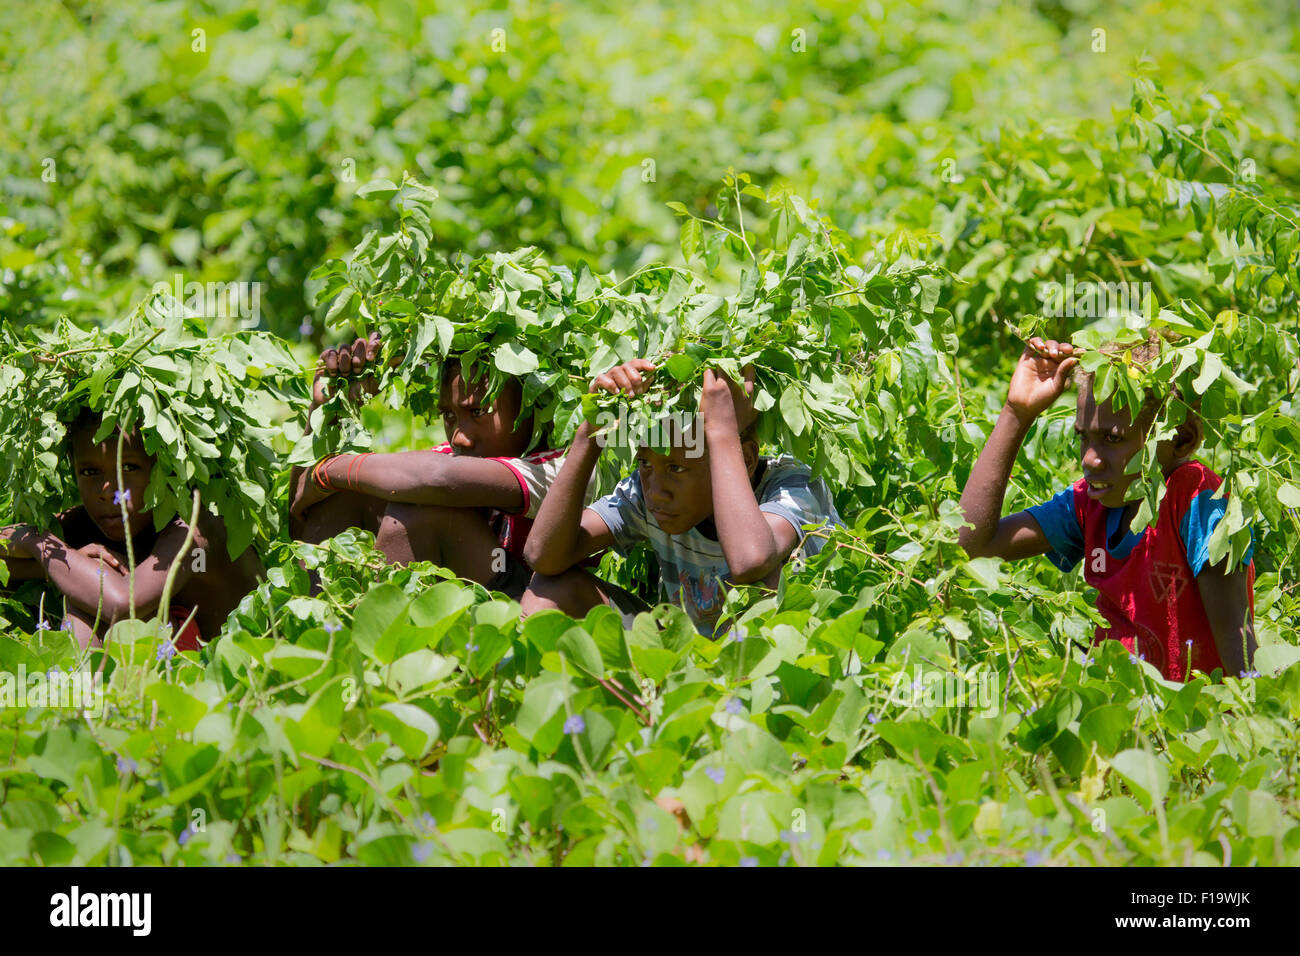 Solomon Islands, Makira-Ulawa Province, Owaraha aka Santa Ana, local boys seek shade from sun in creative way. - Stock Image